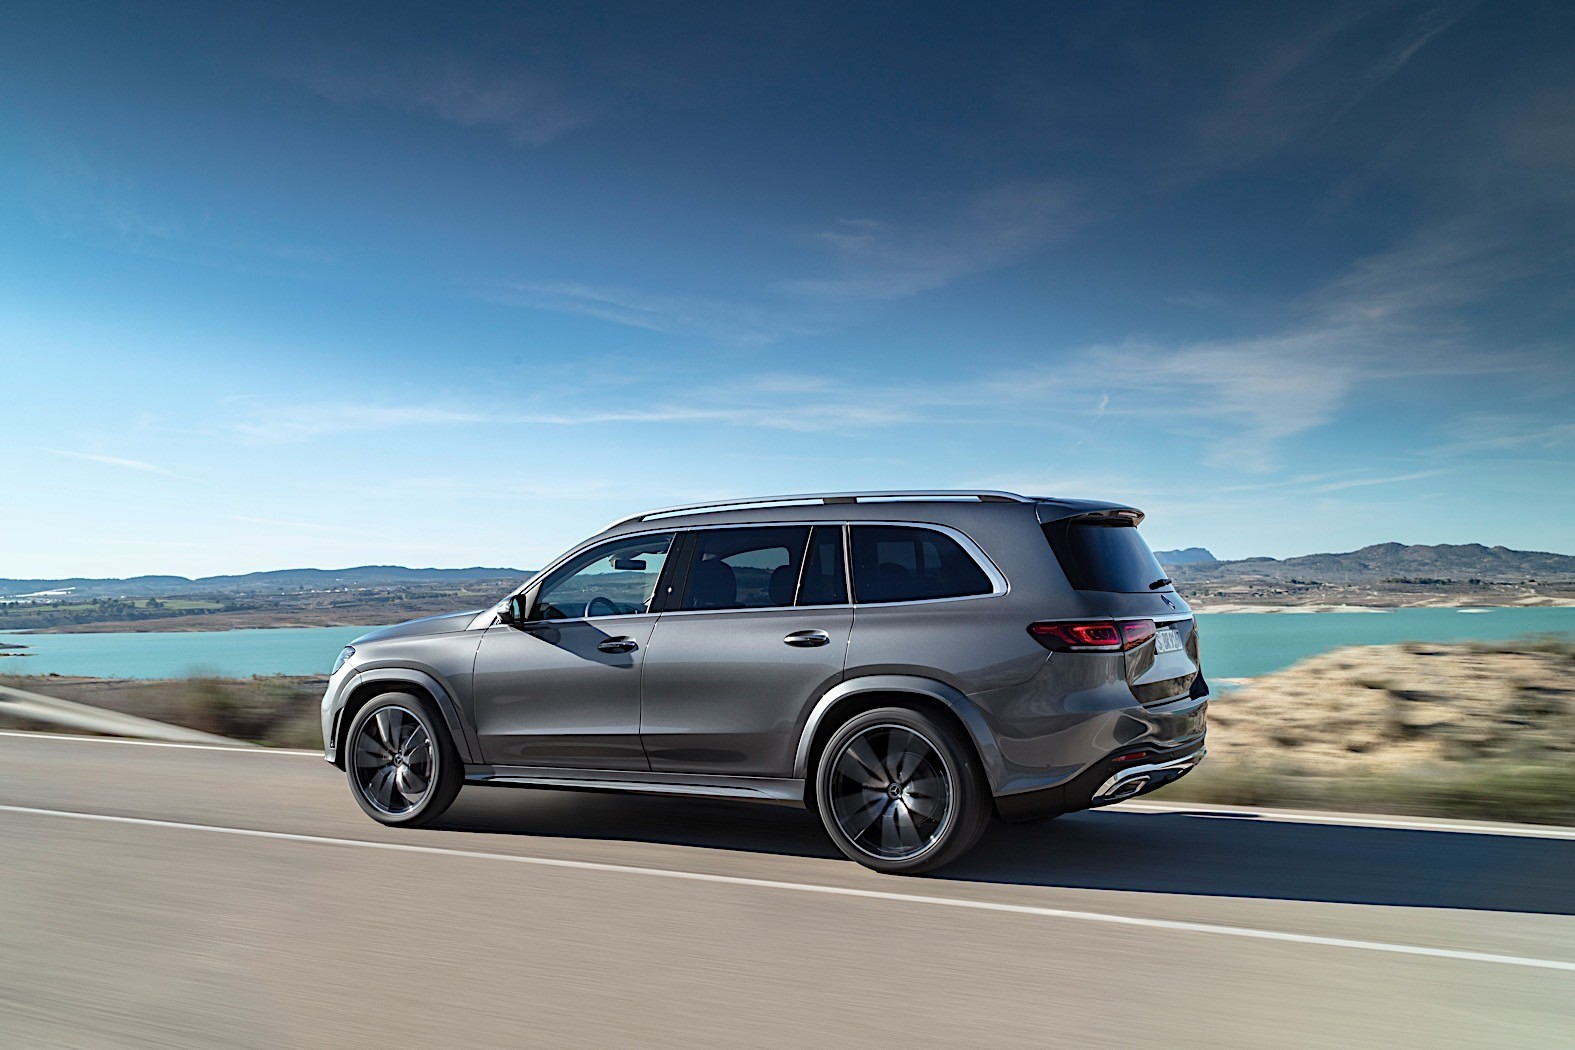 The Best Gl63 Amg Price In South Africa